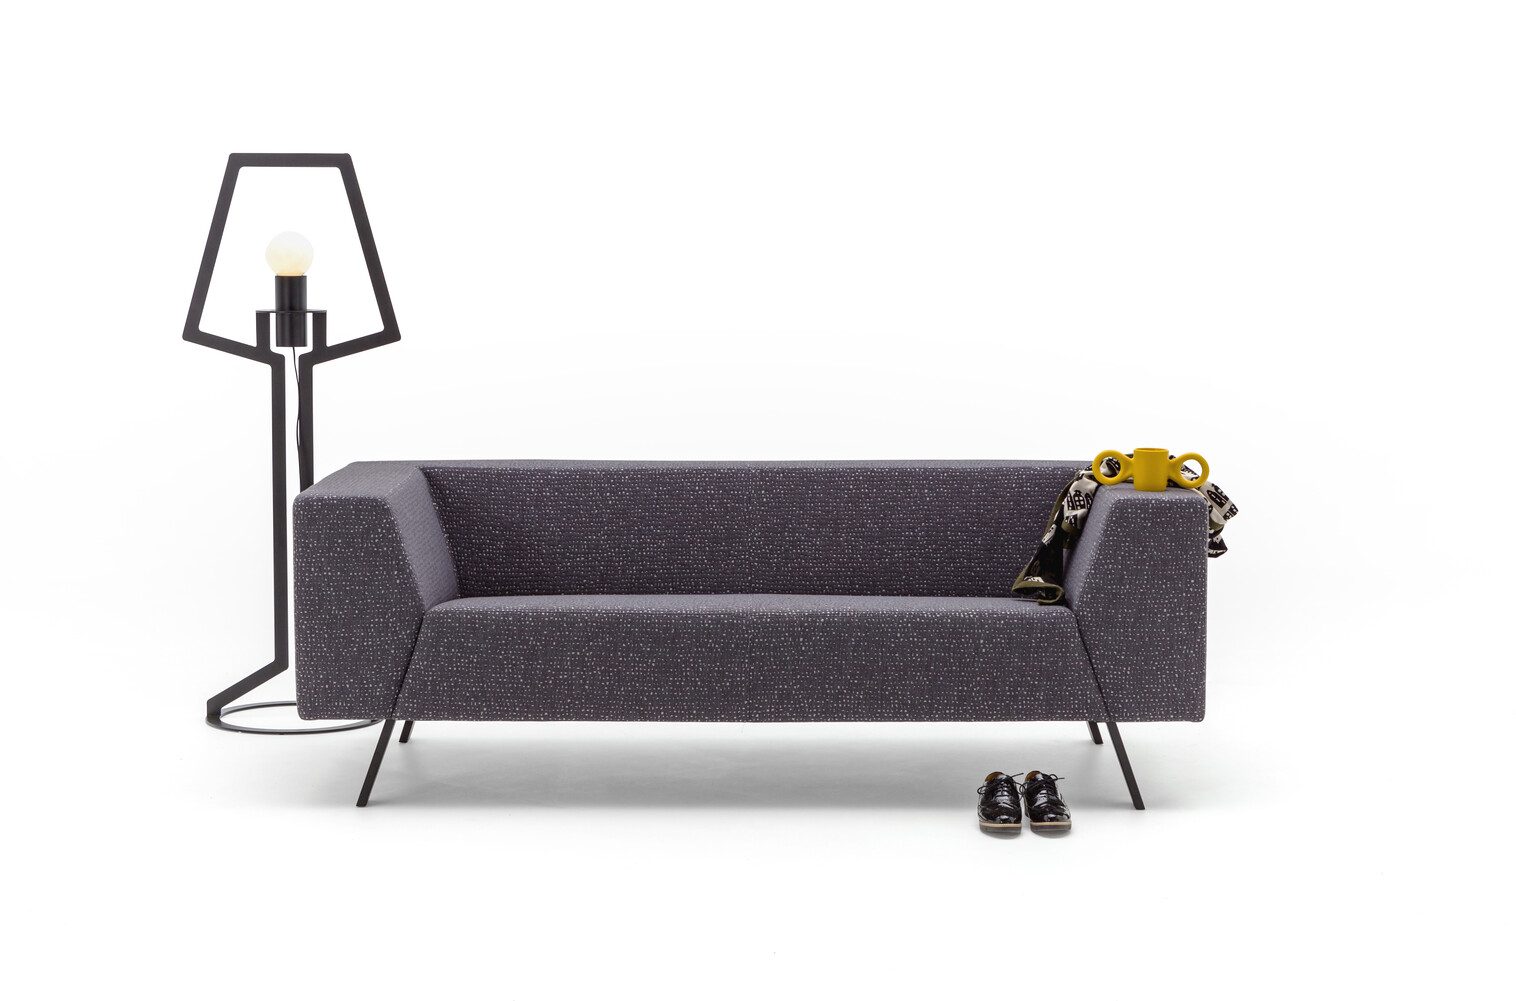 Gispen Sett low 3 seat sofa in galaxy 178 anthracite with Oultine floorlamp and dombo cup front view